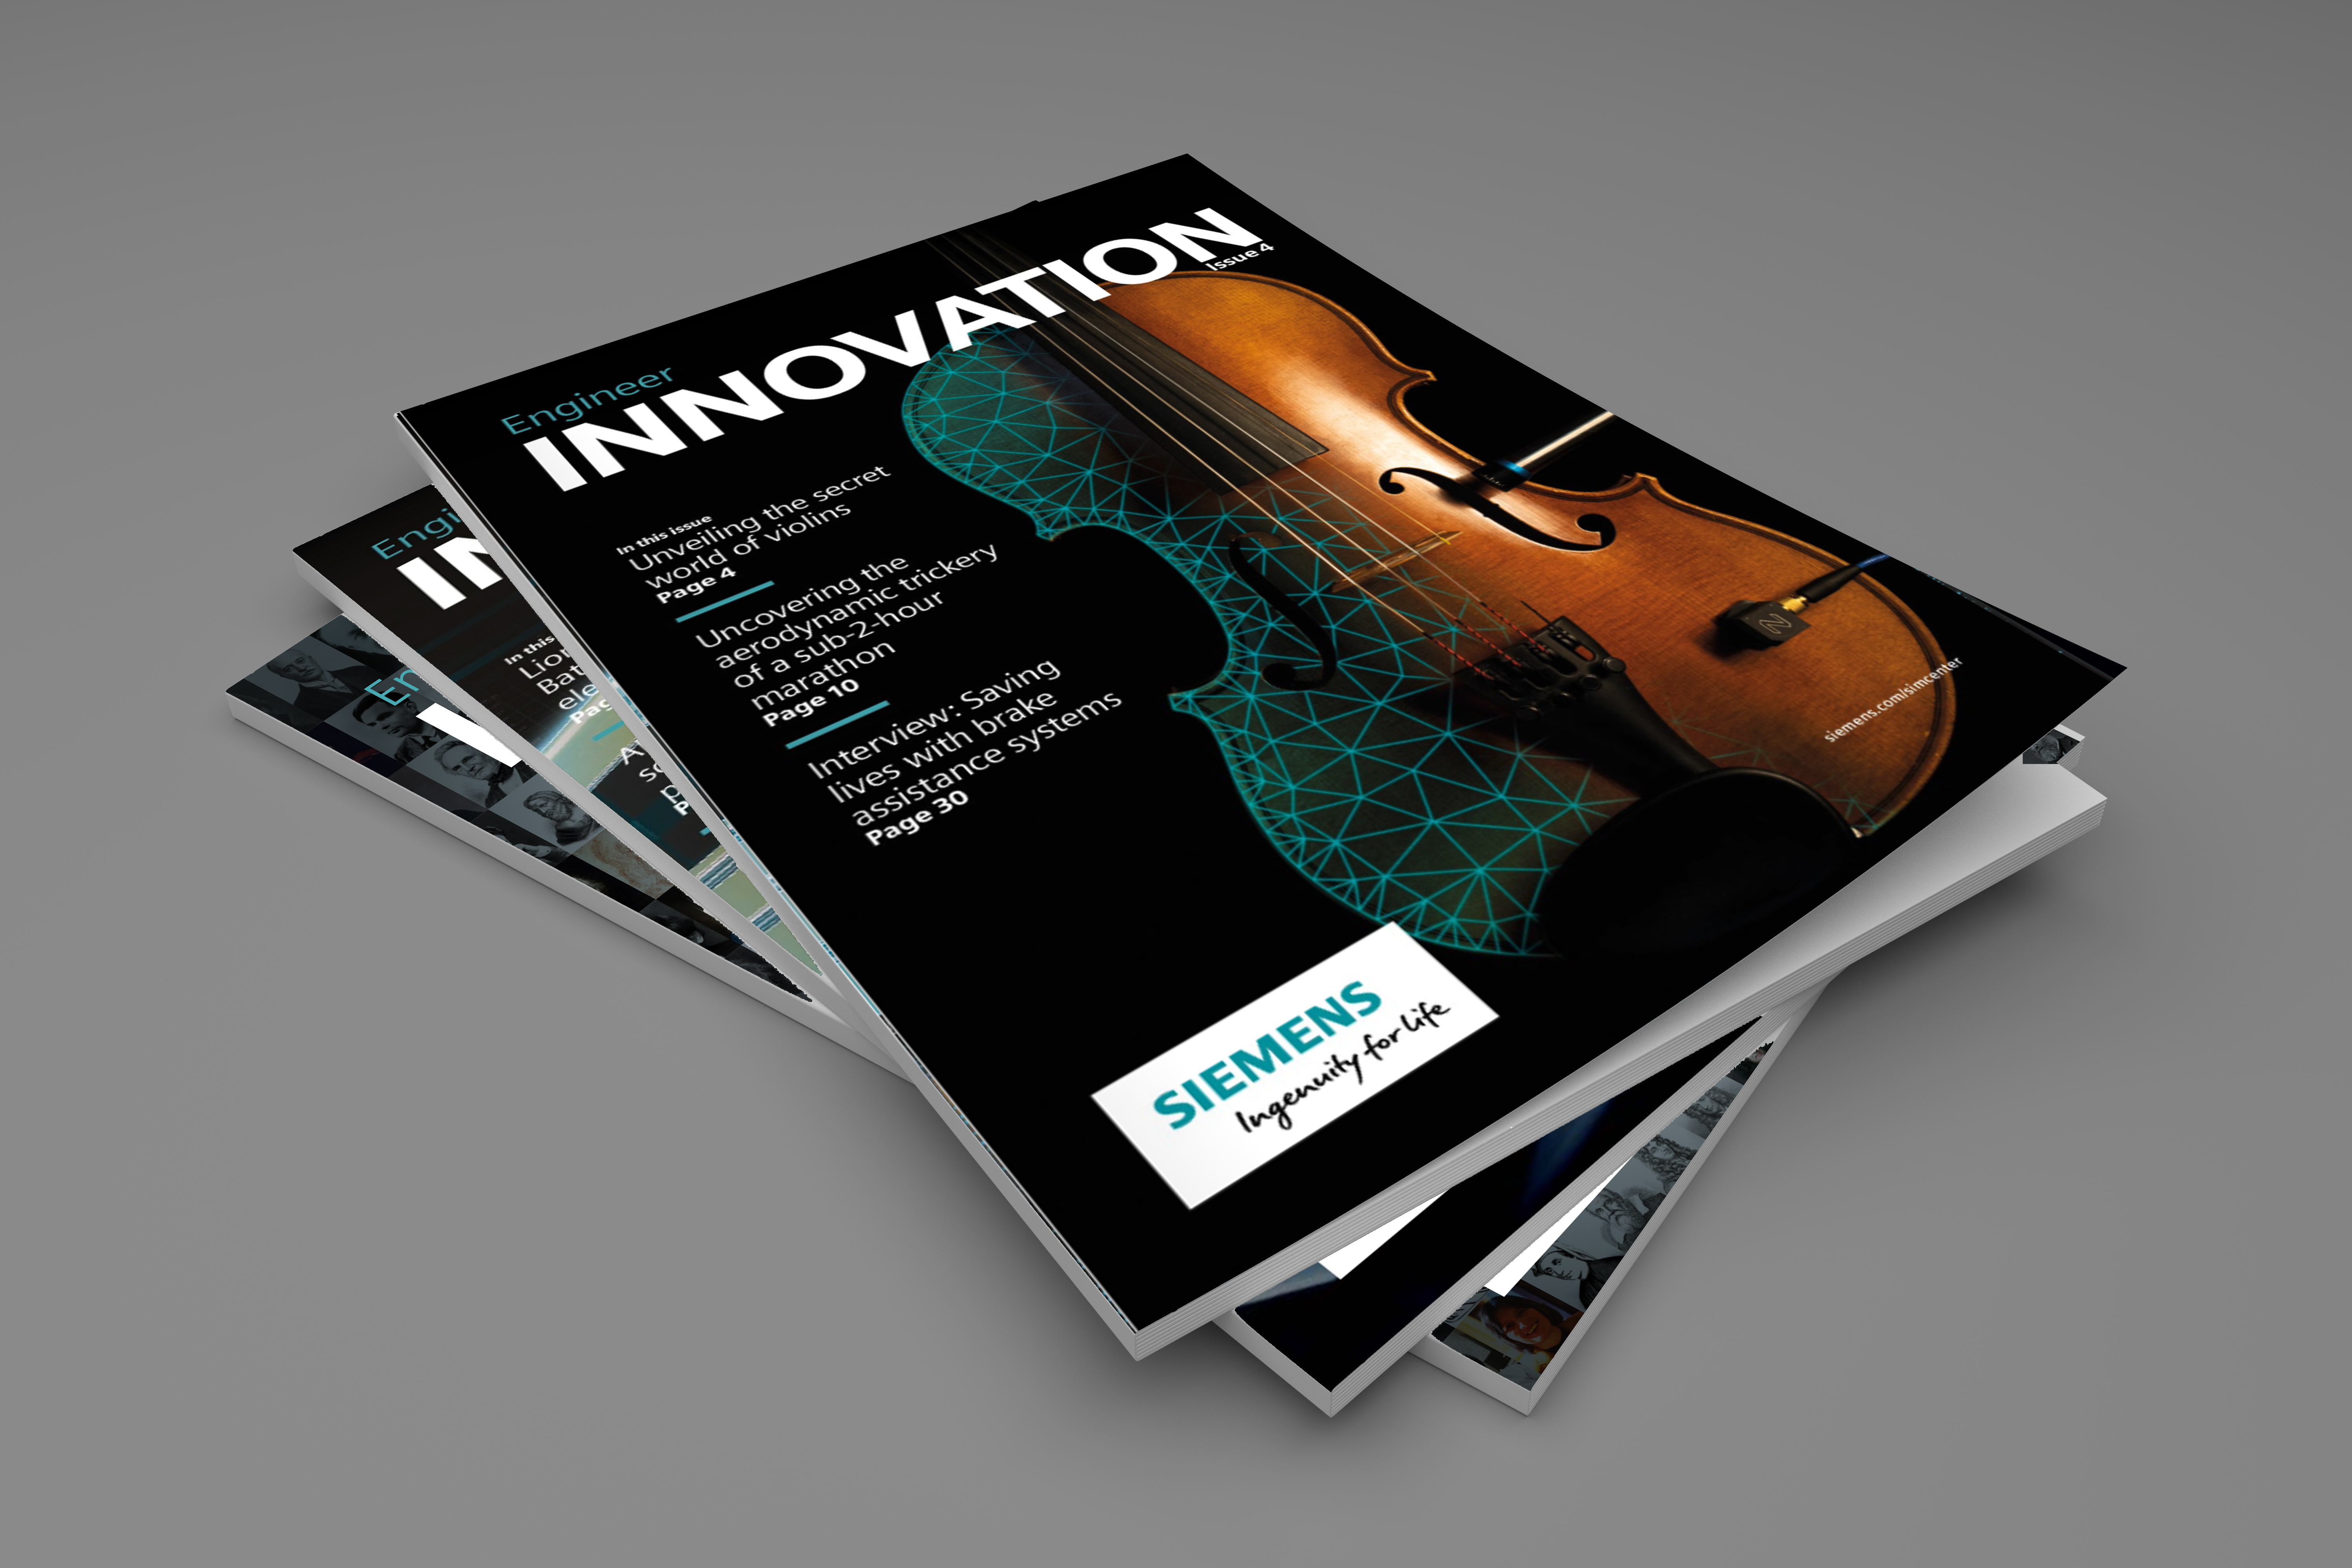 Engineering Innovation magazine